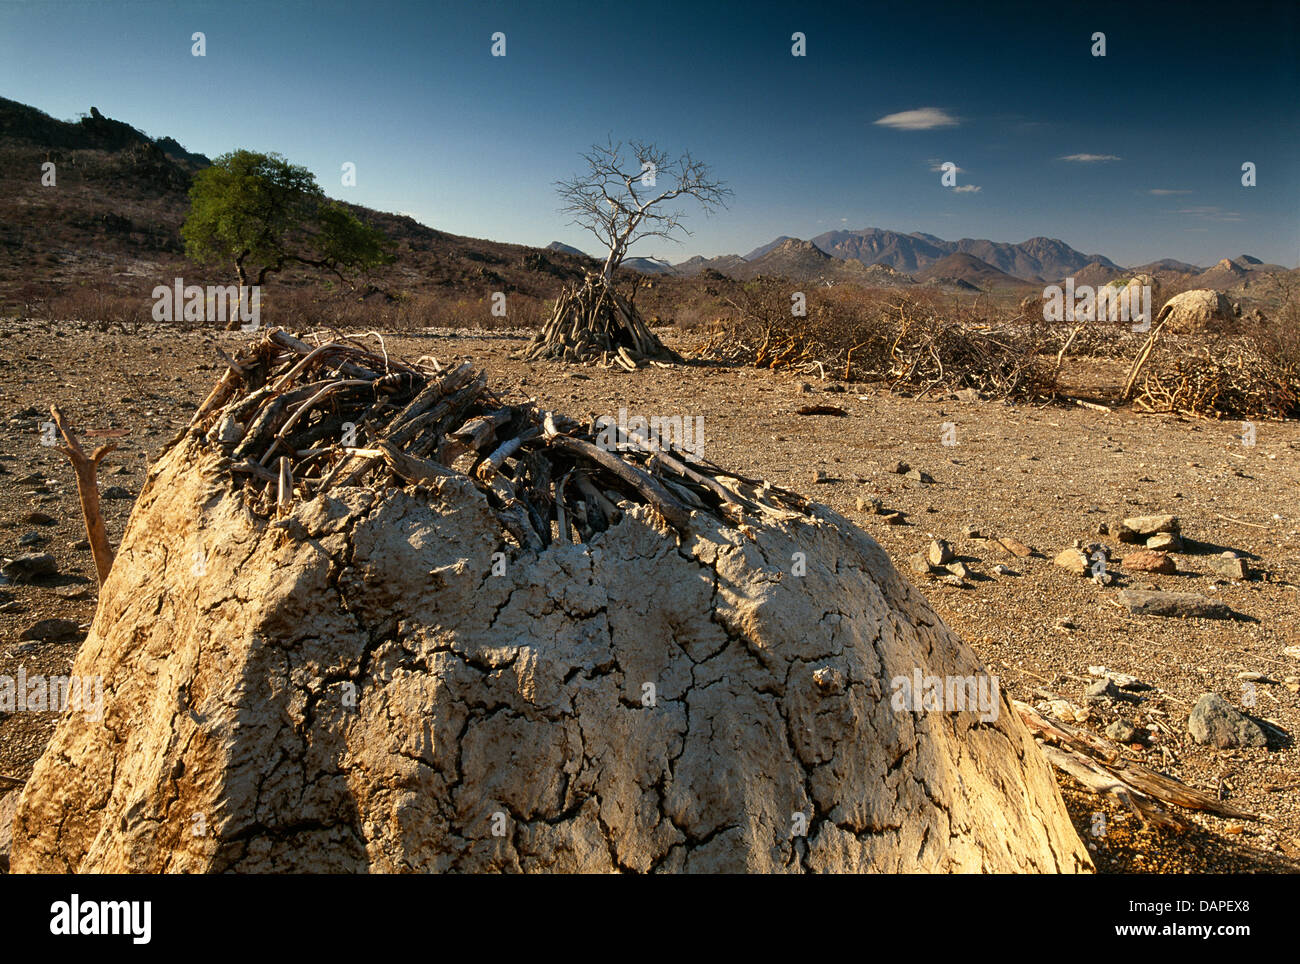 A himba kraal in Angola. Stock Photo